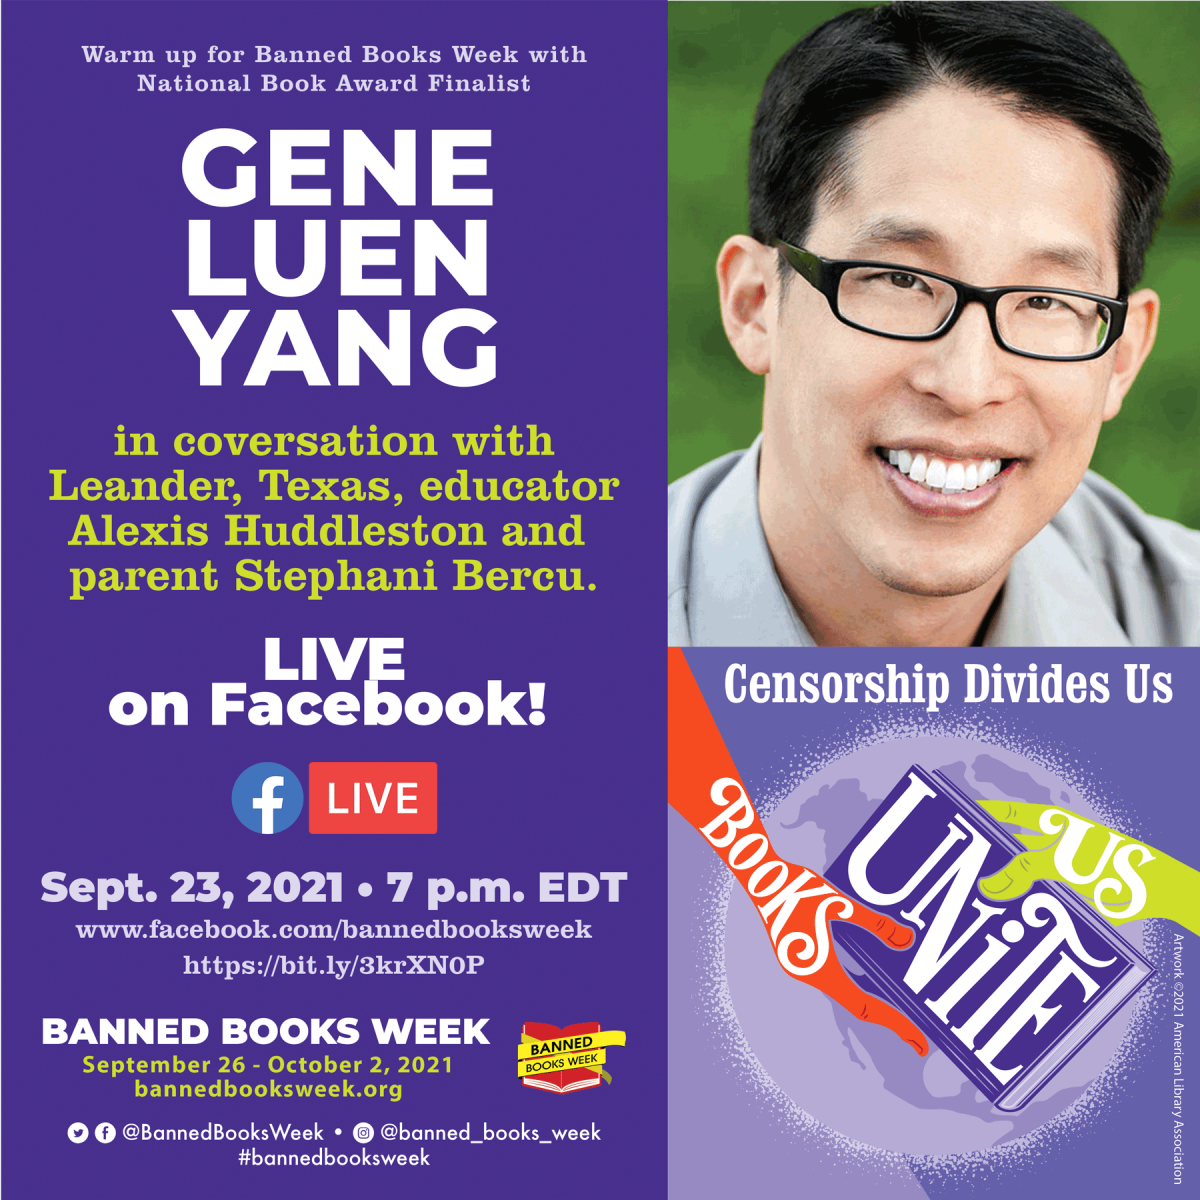 Triptych of images. Top right corner is a photo of Gene Luen Yang. Smiling wearing a gray polo and glasses. Bottom right is an image of a book being handed from one hand to another. It says Books Unite Us Censorship Divides Us. Left gives all the info for the event Gene Luen Yang in conversation with Leander, Texas, educator Alexis Huddleston and parent Stephani Bercu. LIVE on Facebook!